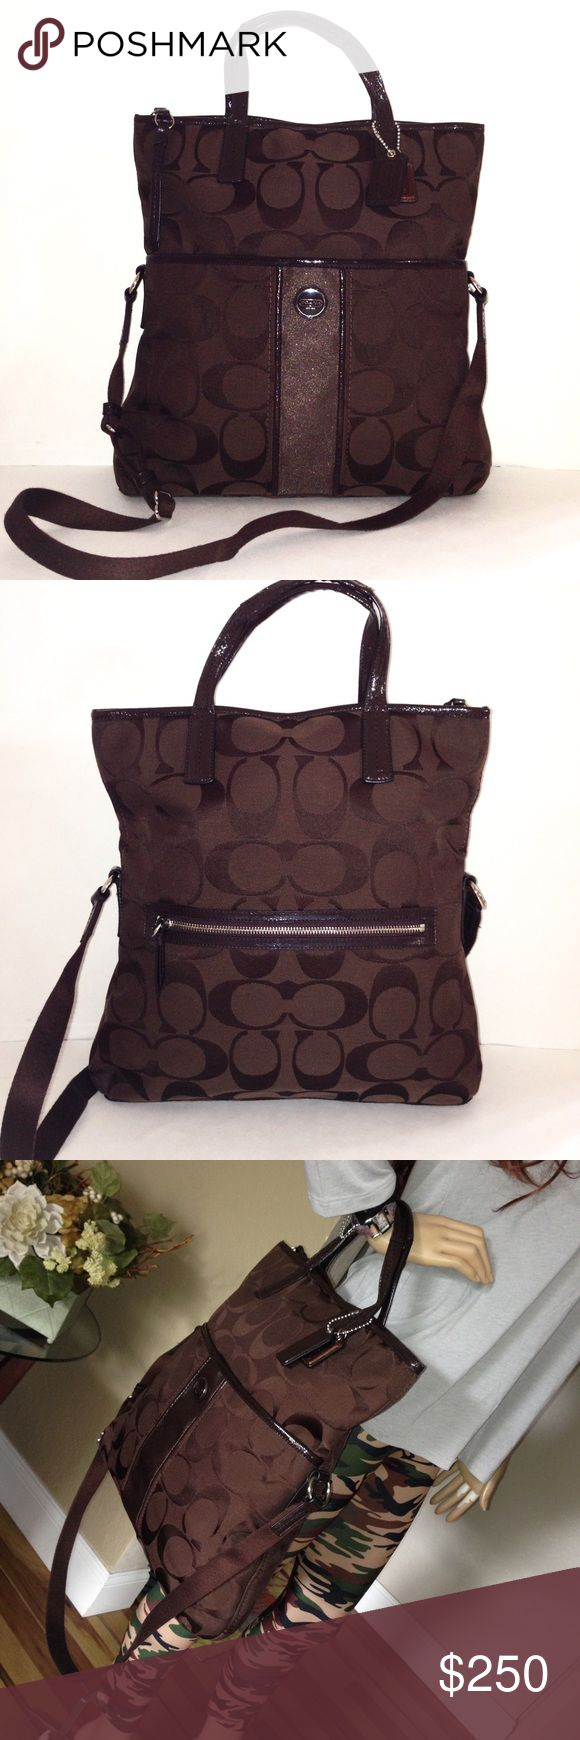 Coach Overnight Travel Gym Tote Crossbody Bag Same day shipping! 📦📦📦 New Authentic Coach Signature Stripe Foldover Overnight Travel Gym Diaper (no changing pad) Crossbody Tote. Signature fabric with patent leather mahogany trim. Inside zip, cell & multifunction pockets. Exterior slip pocket with snap fastening and exterior zipper pocket for all of your at-hand essentials. Spacious enough to carry smaller electronic devices.  Coach Bag No. G1361-F23304 Coach Bags Totes